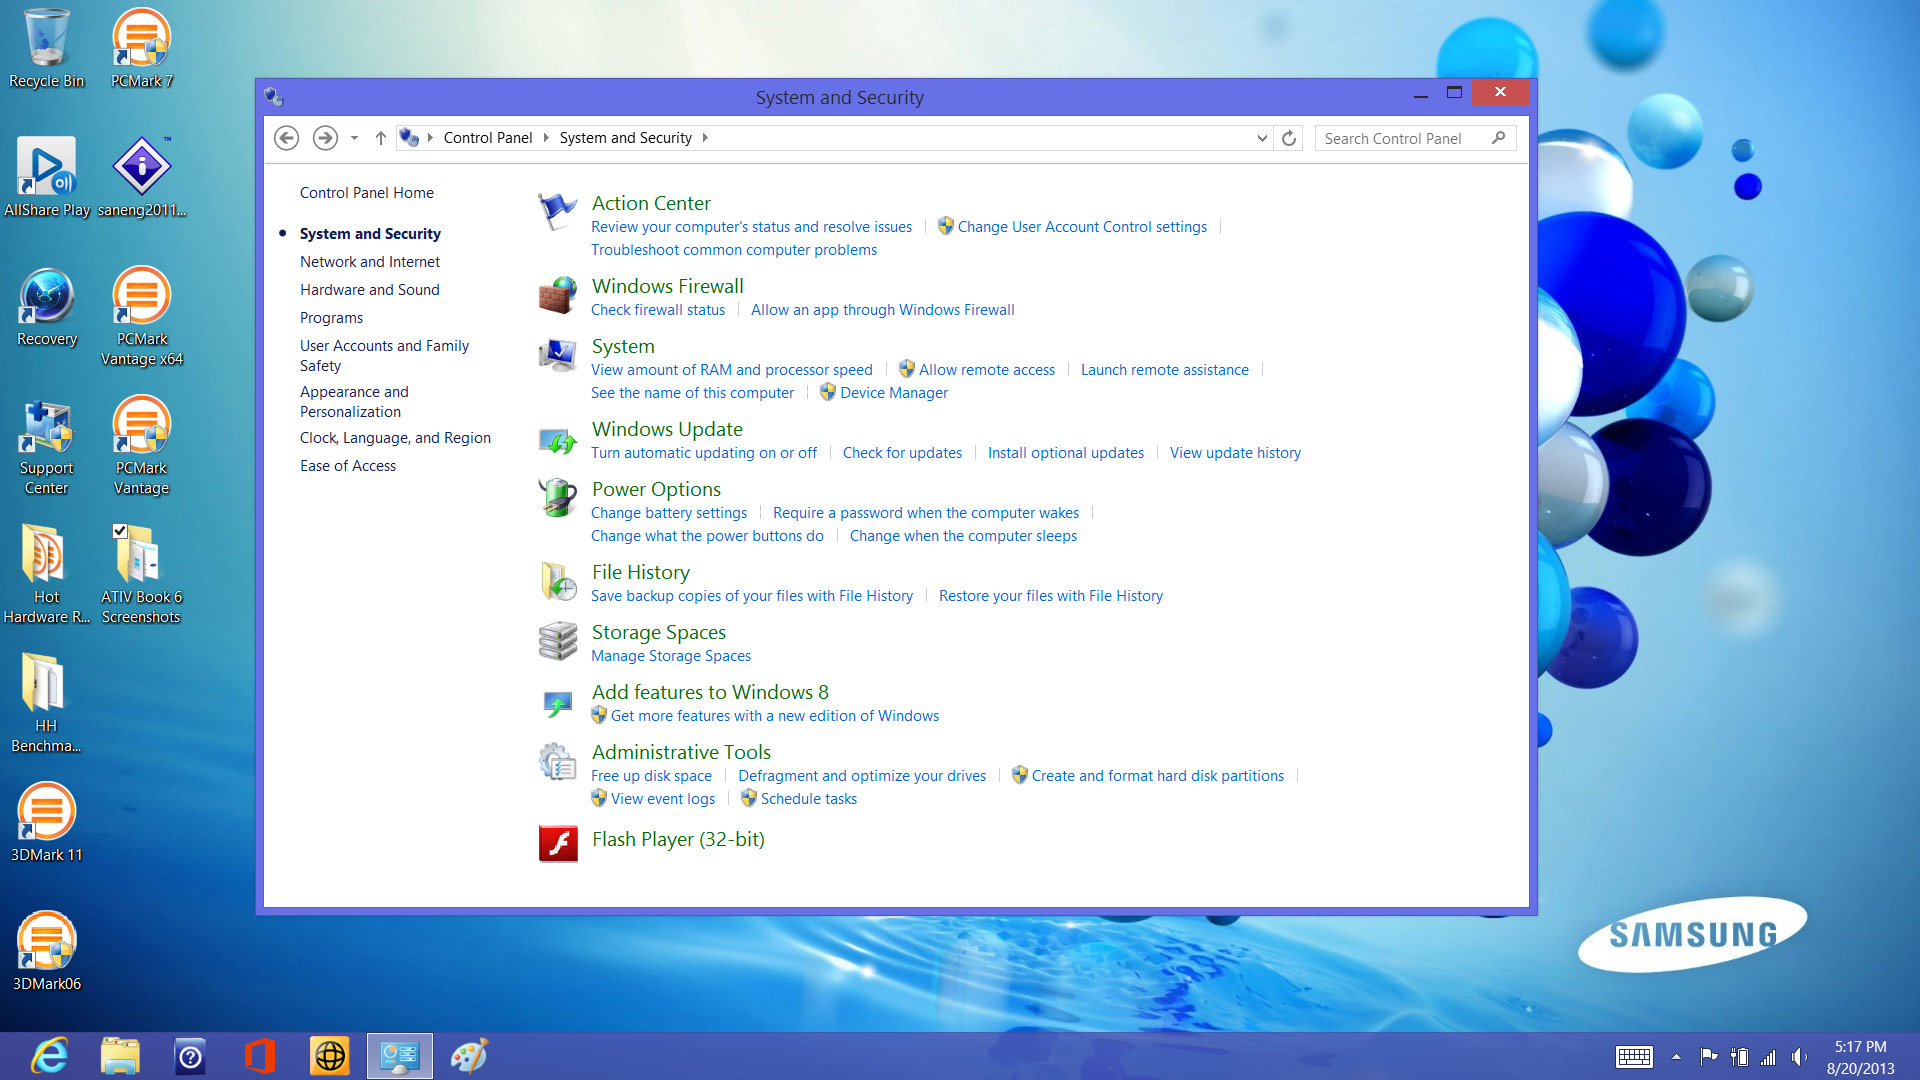 big_ativbook6-screenshot-1.jpg